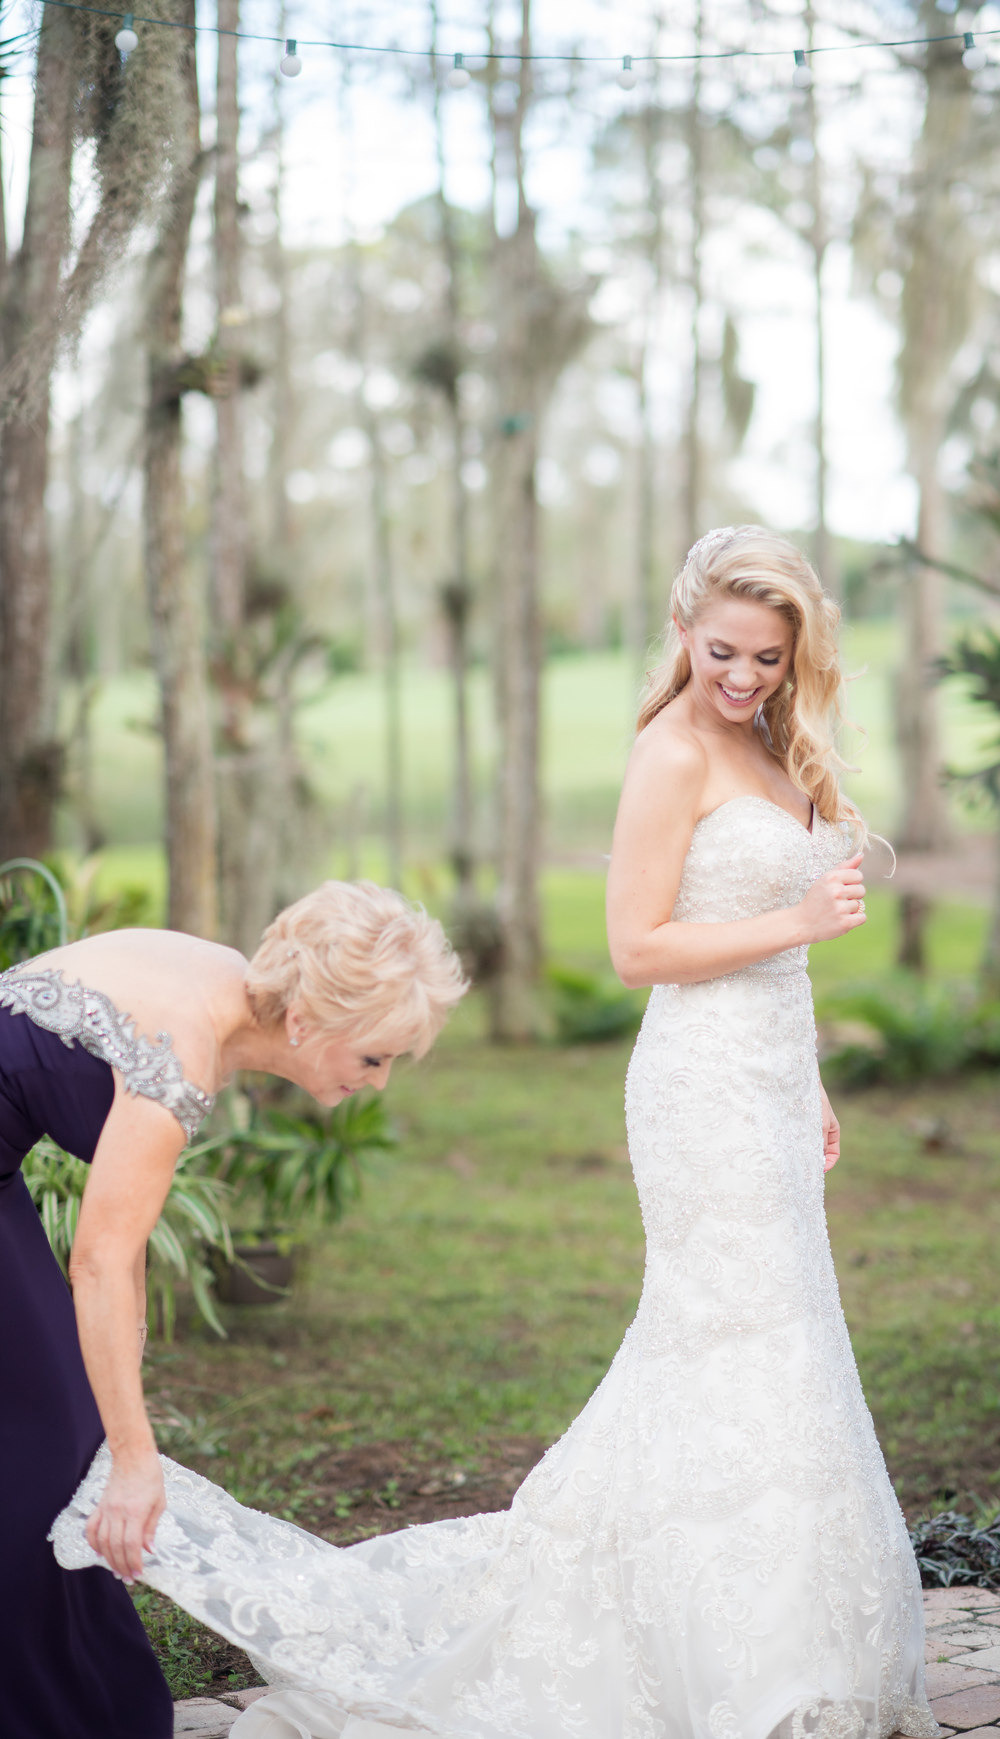 {Eric&Shelley'sWedding}{Dec30th2015}Highlights-0017.jpg